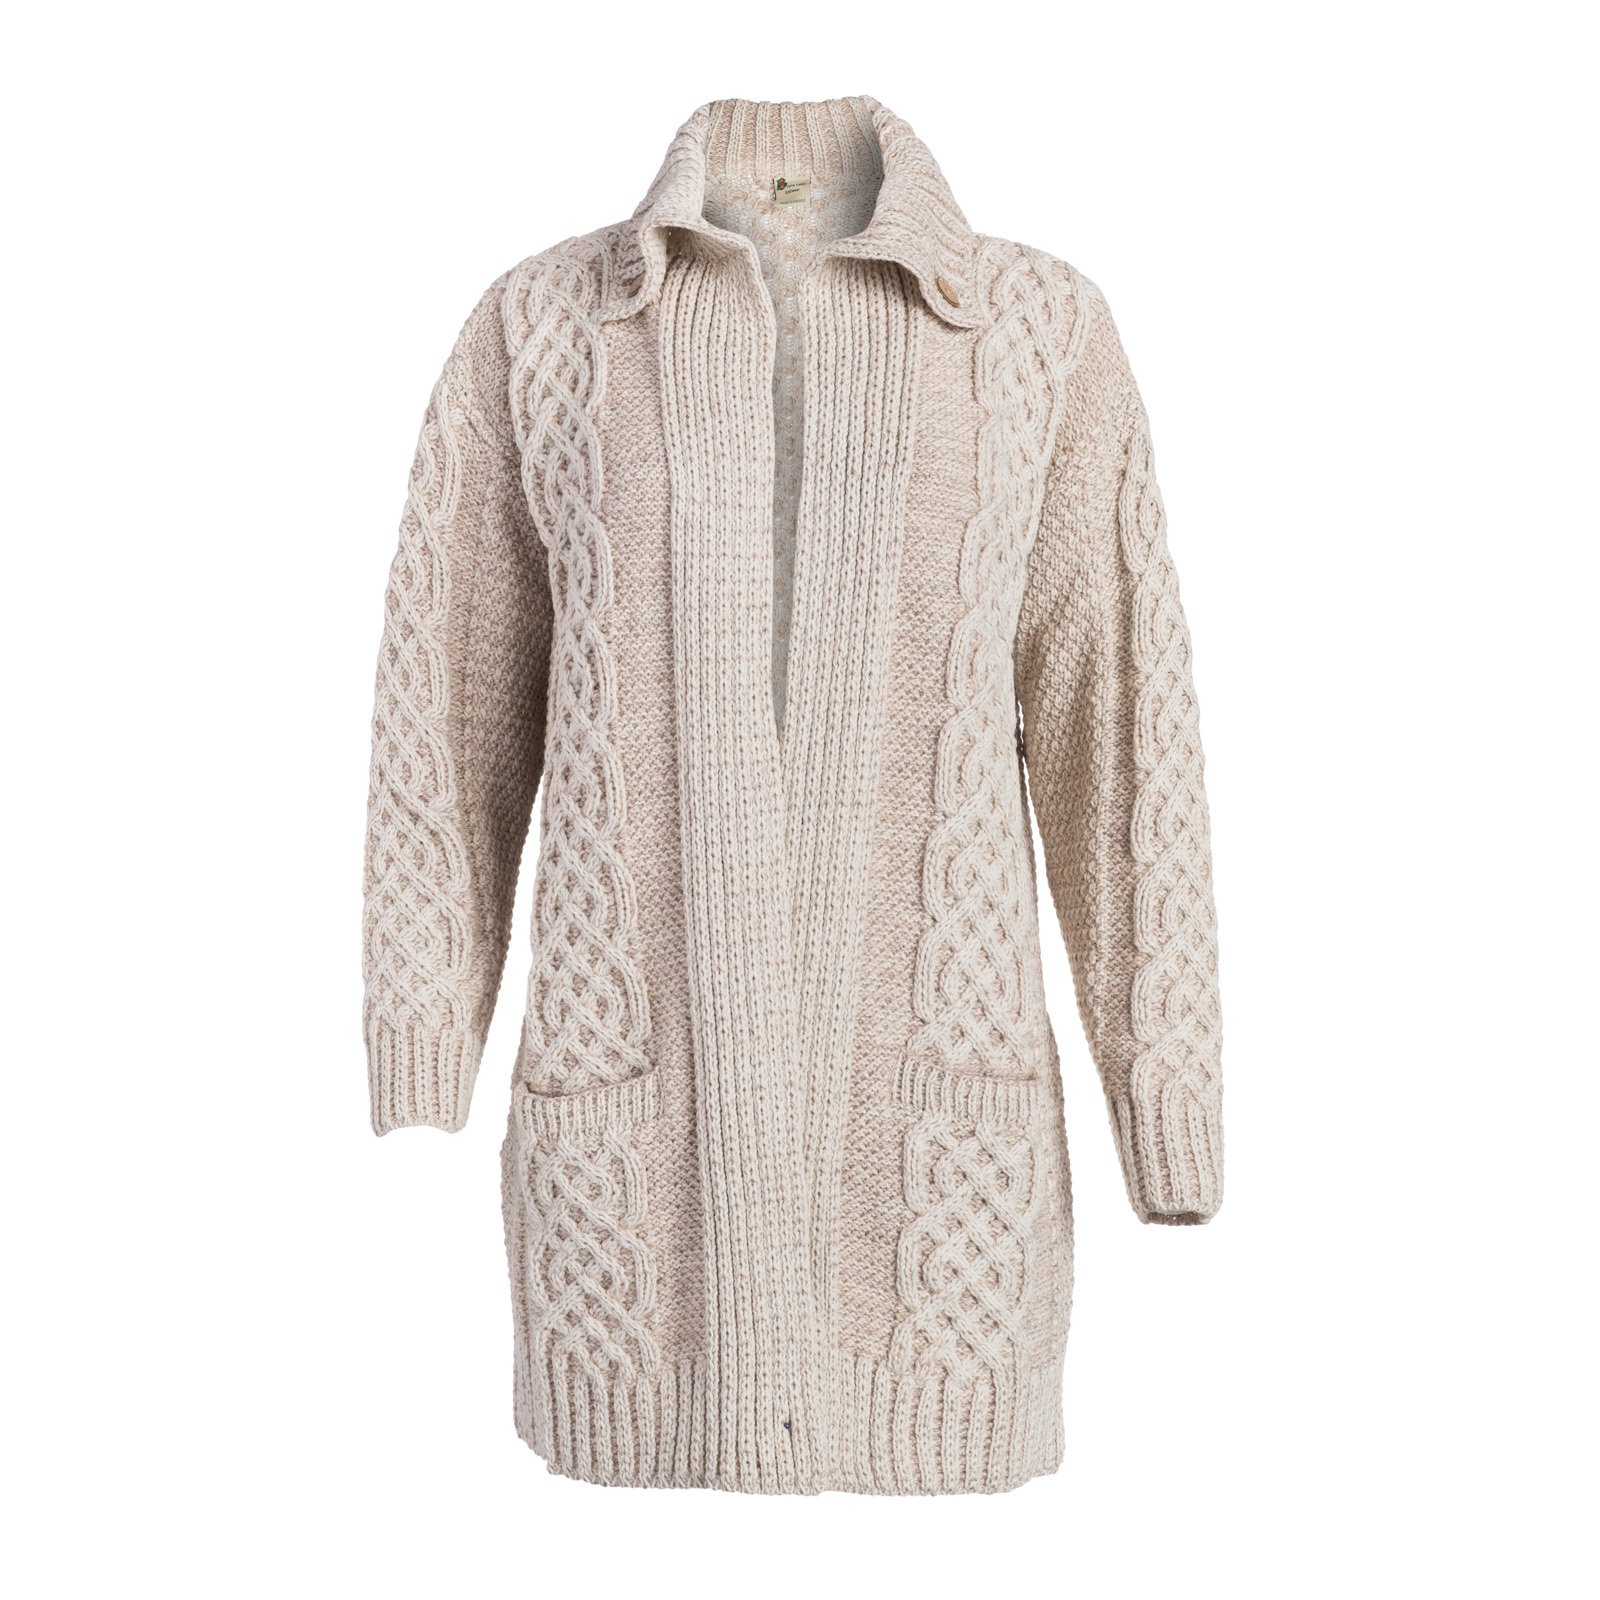 Boyne Valley Knitwear Ladies Celtic Fall Wool Cable Coat Cardigan (Medium, White/Wicker)